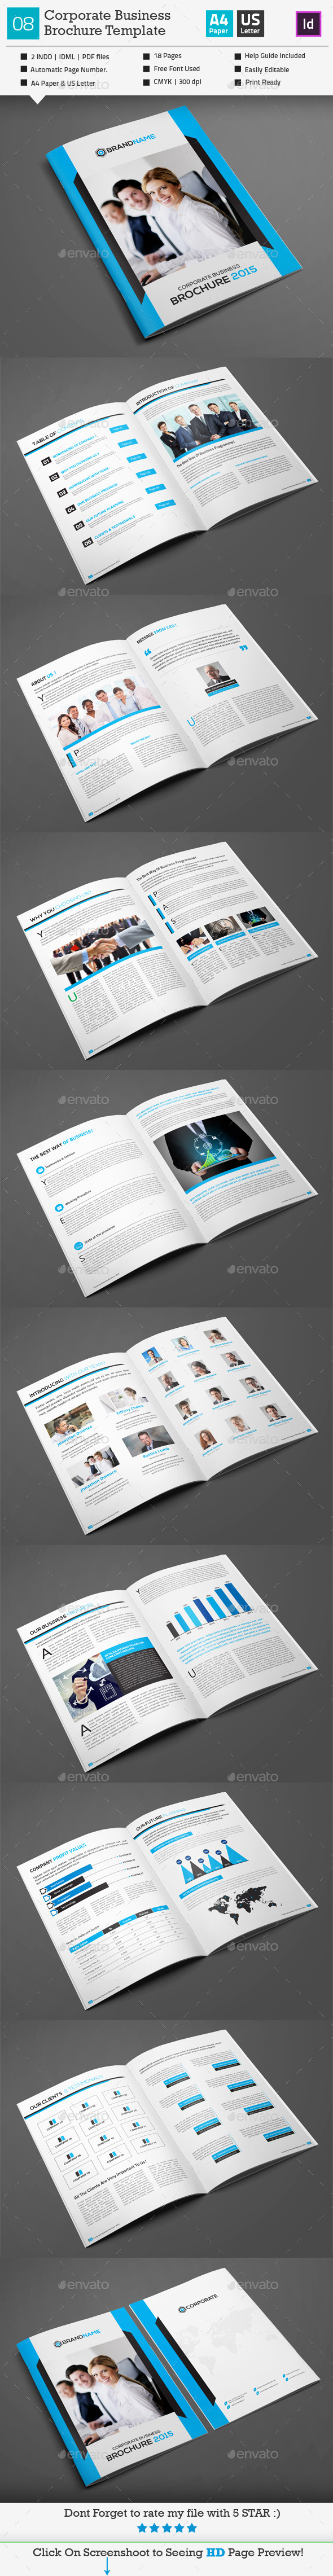 GraphicRiver Corporate Business Brochure 08 10561780